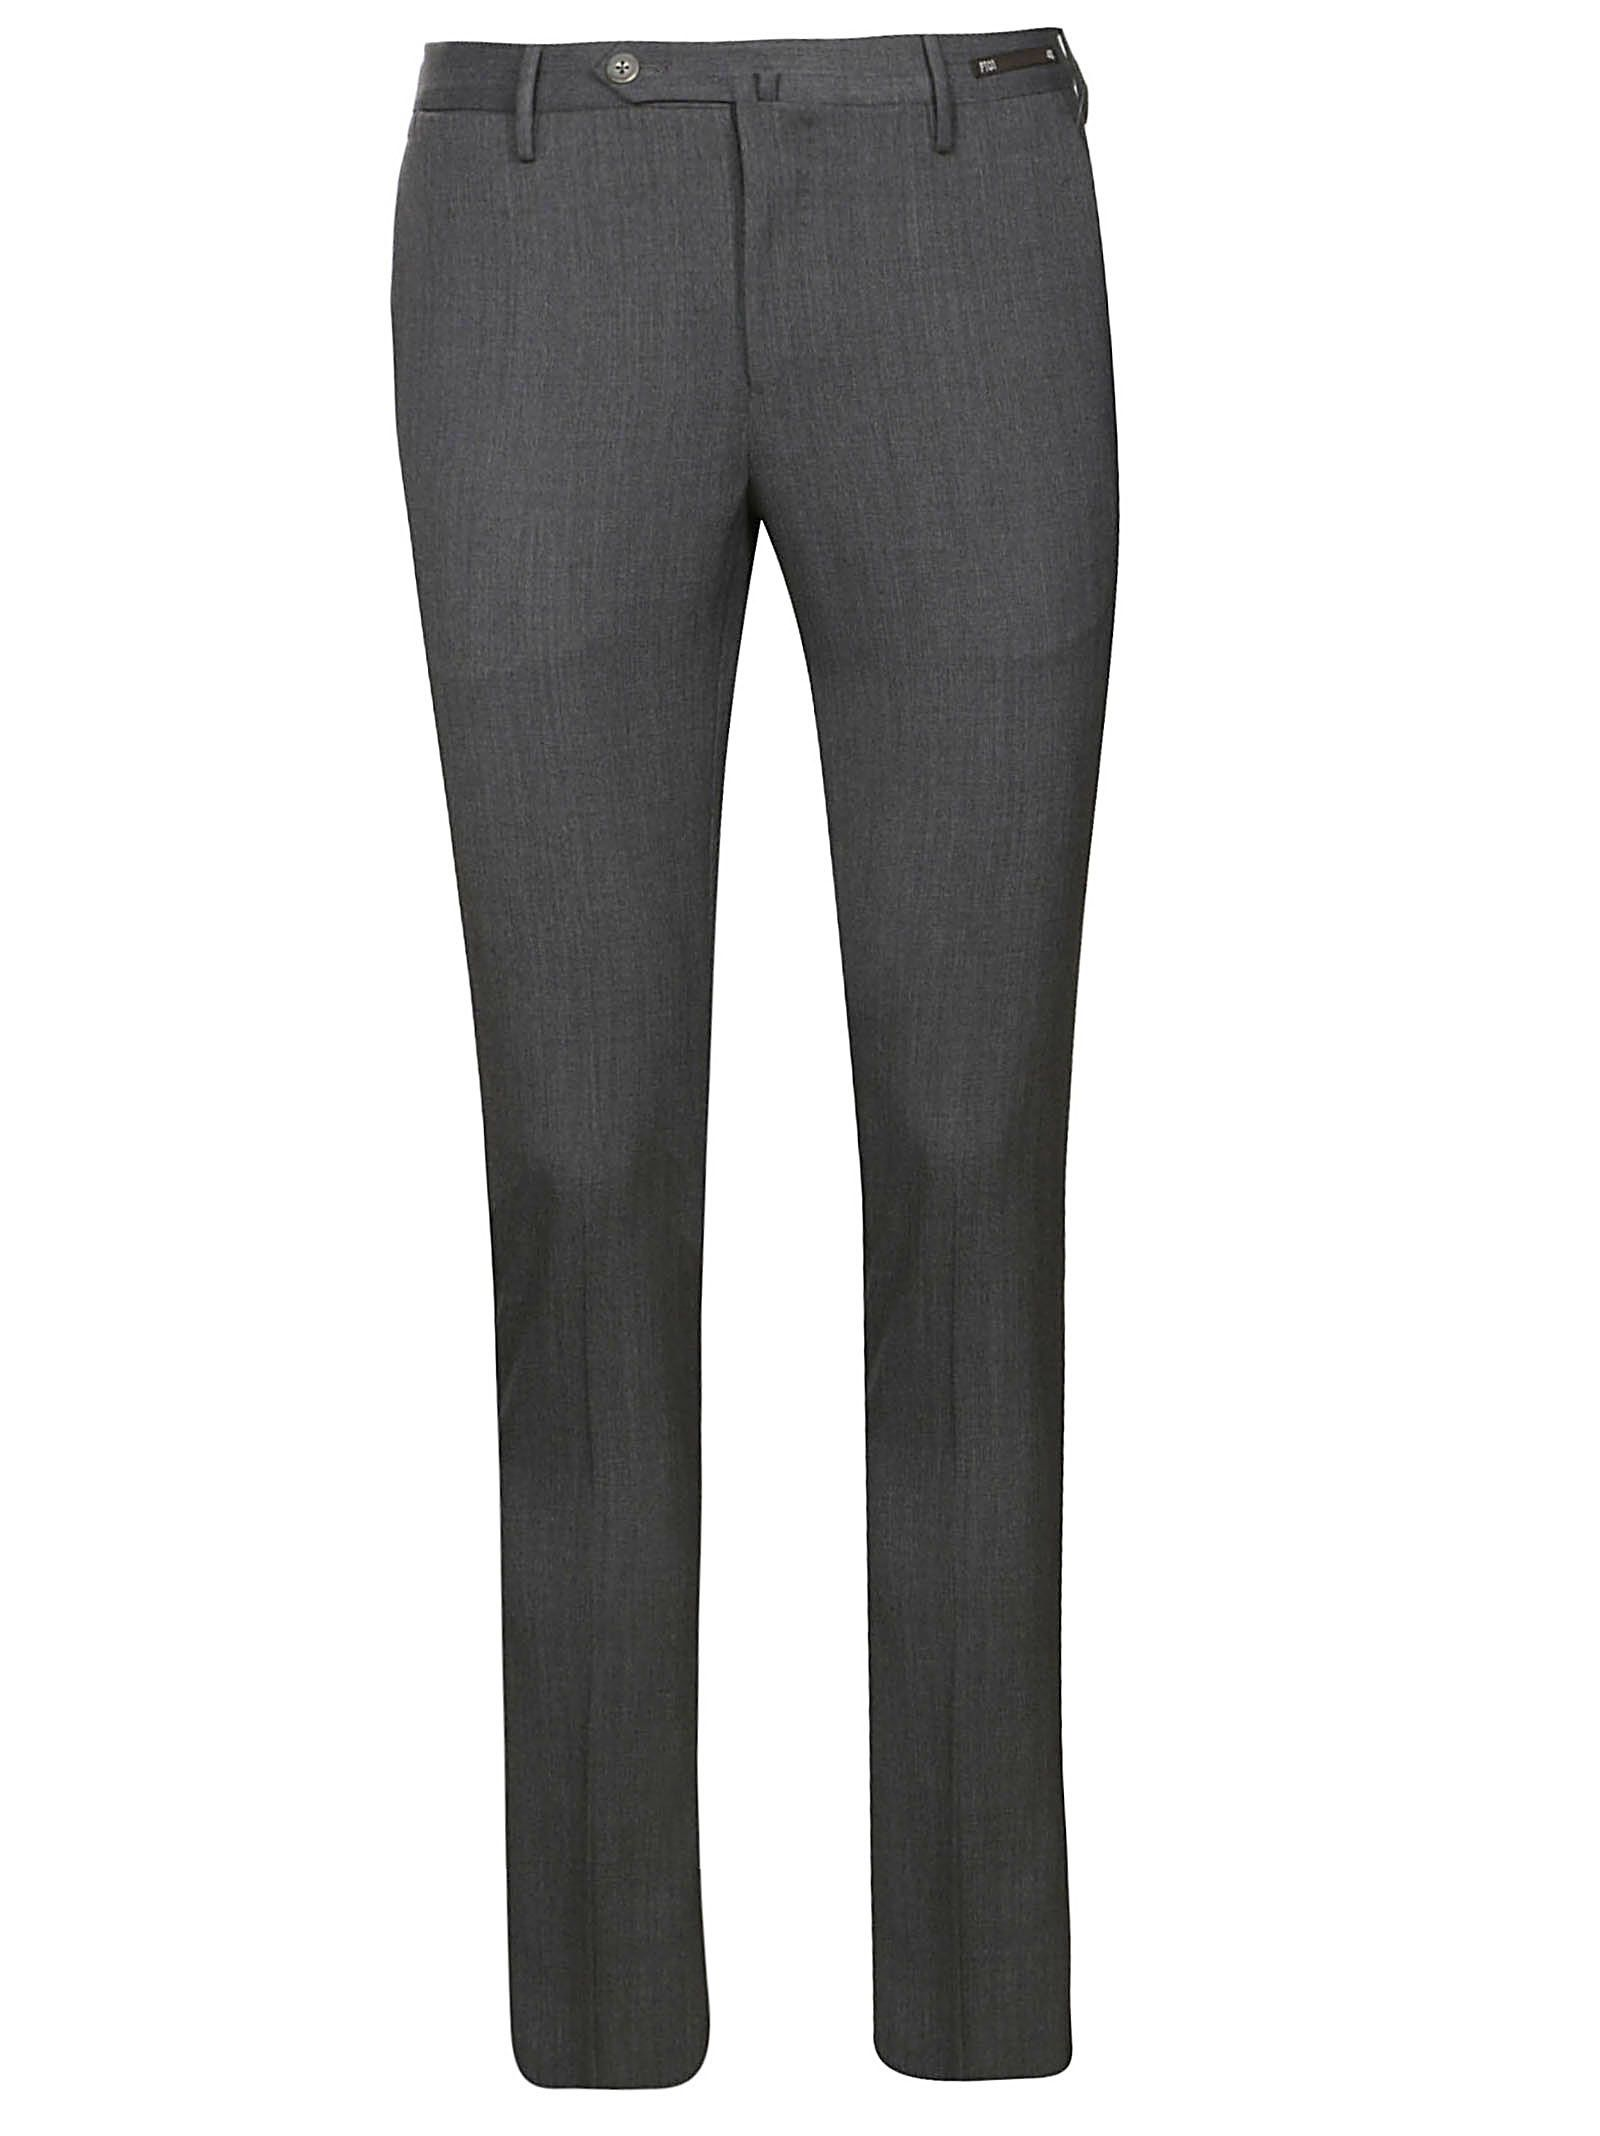 Pt01 Creased Slim Fit Trousers